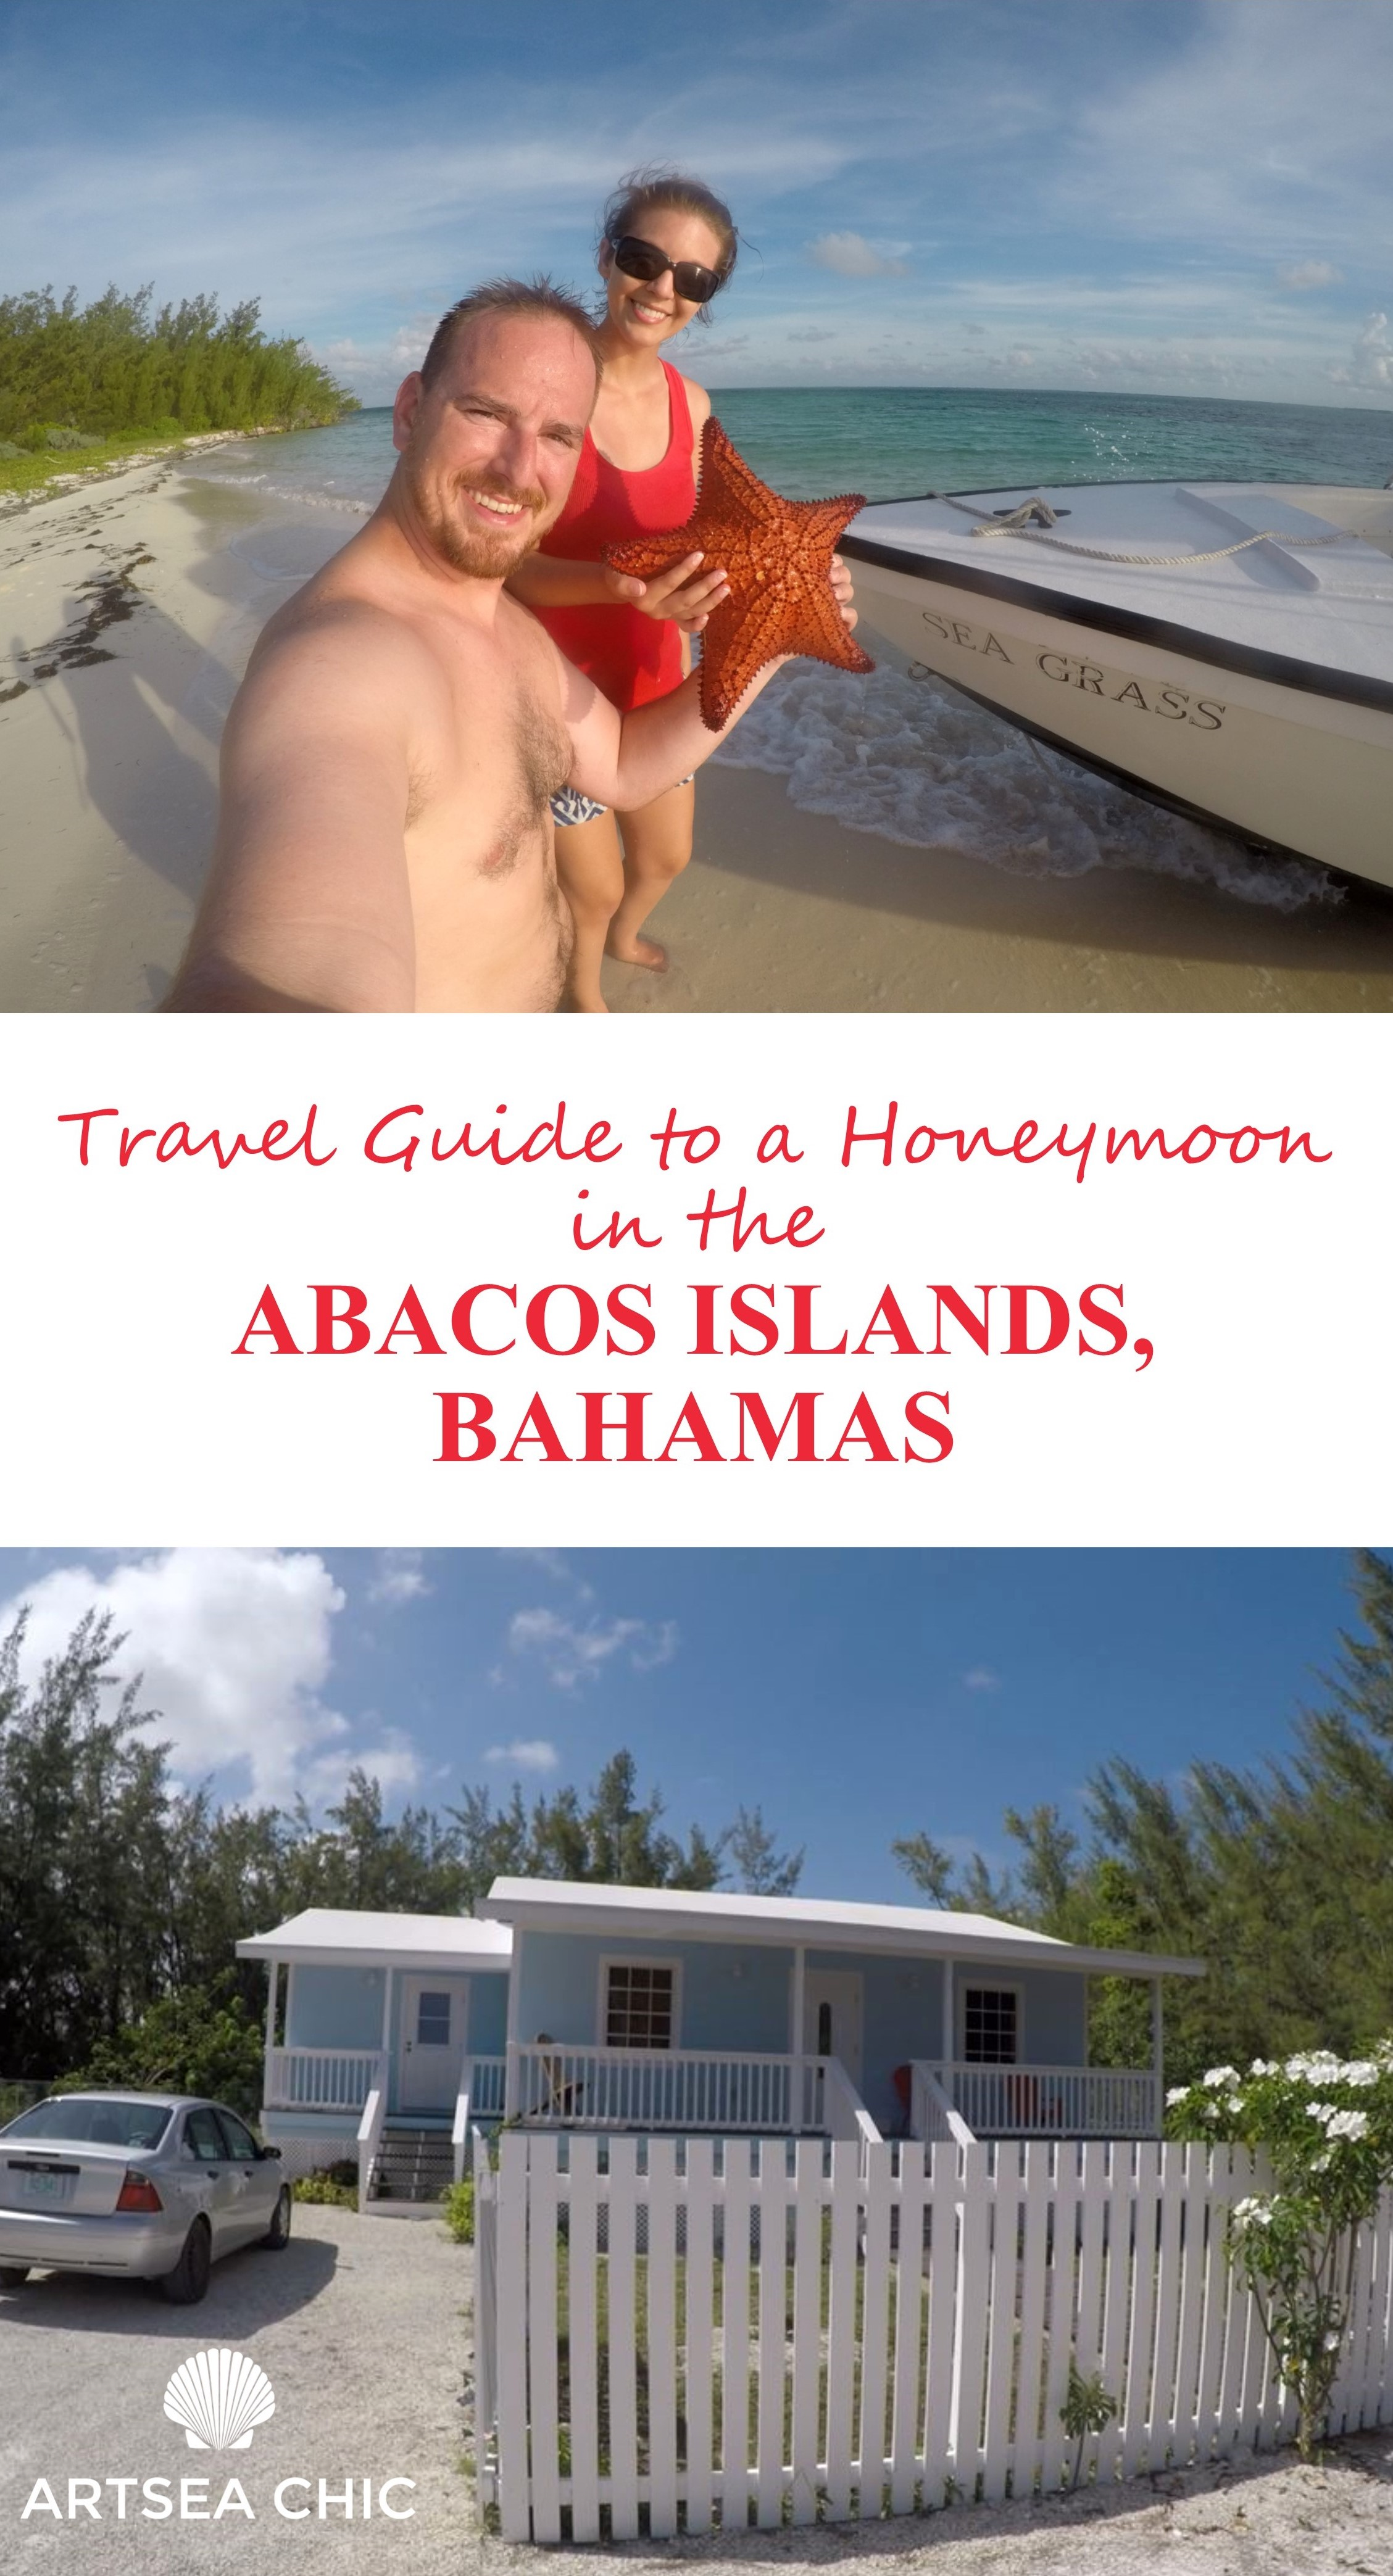 Travel Guide to a Honeymoon in Abacos Islands Bahamas